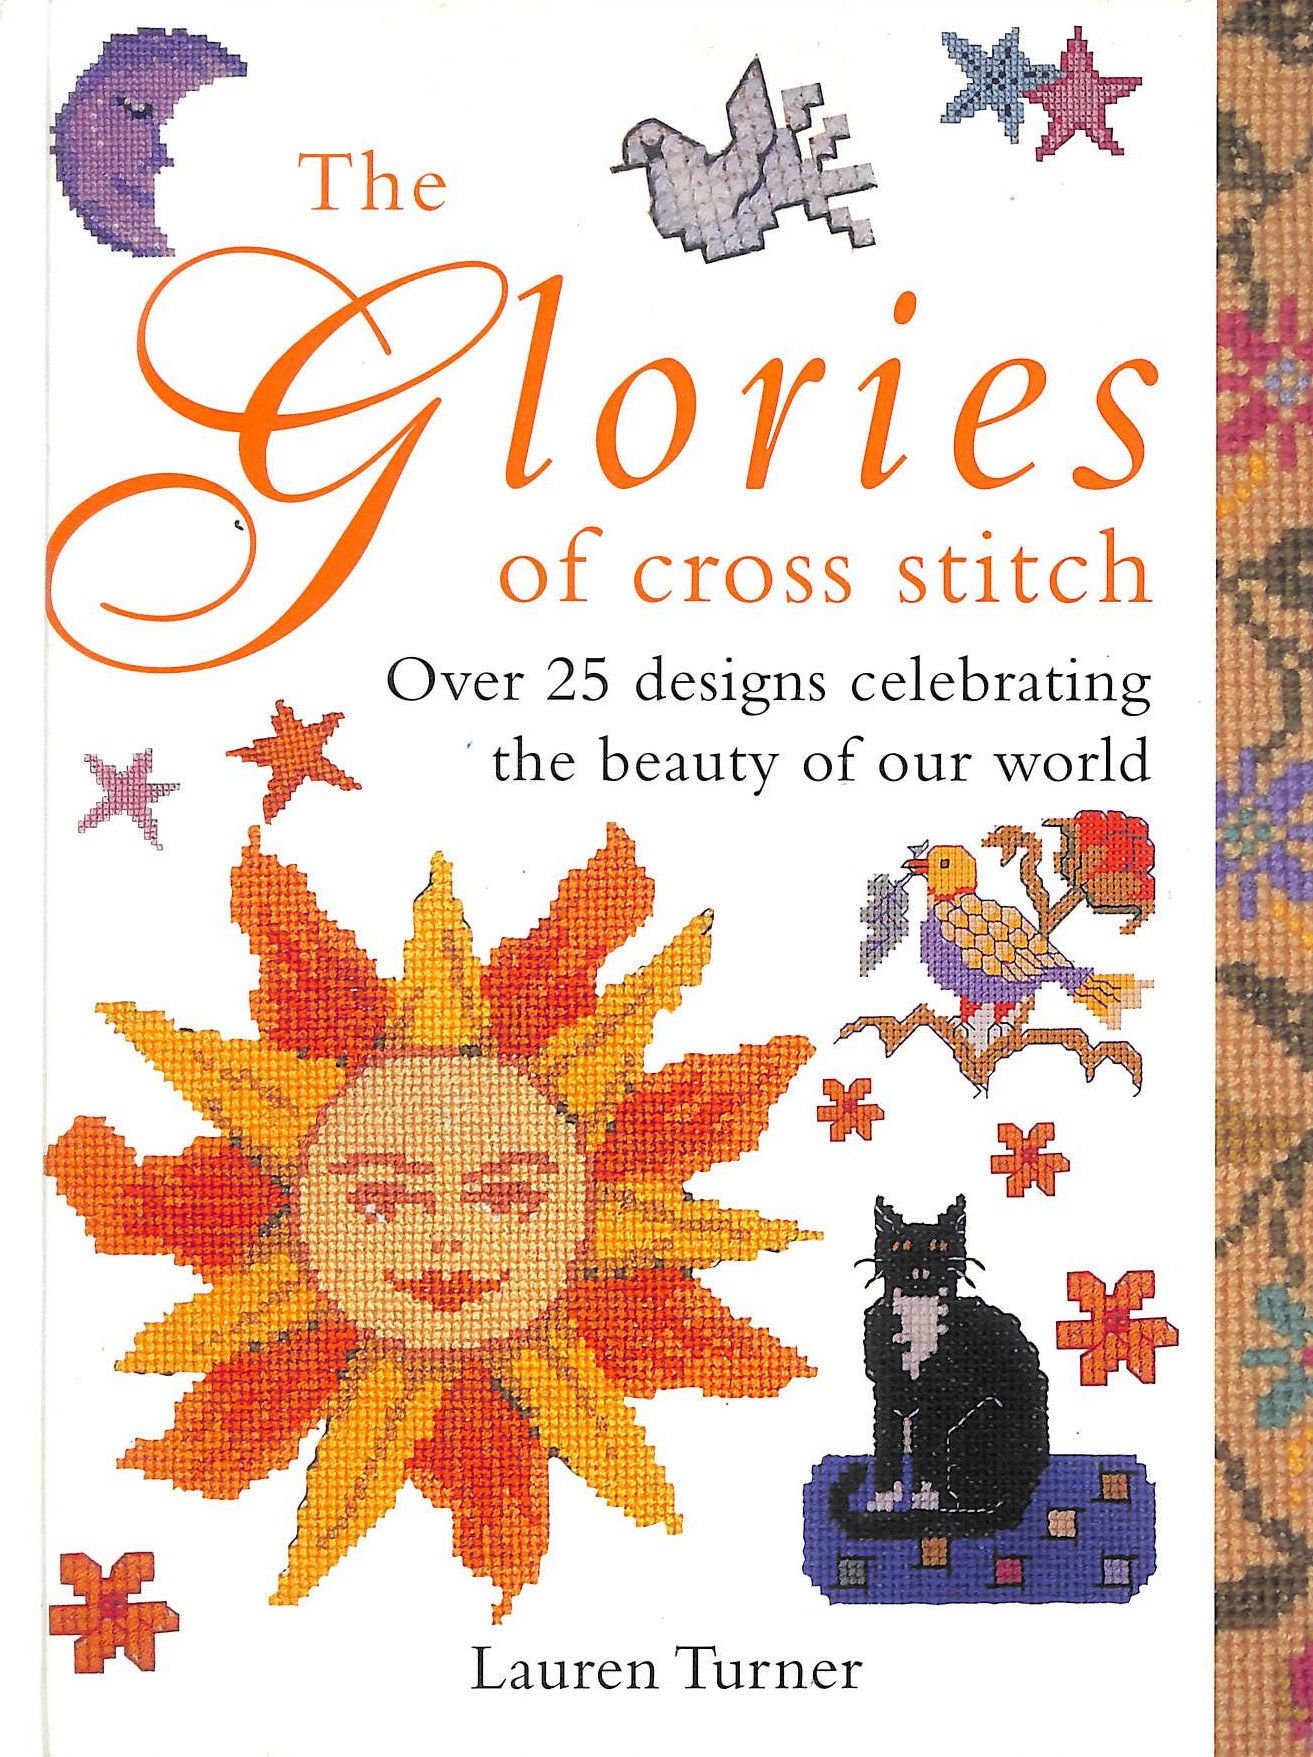 The Glories of Cross Stitch: Over 25 Designs Celebrating the Beauty of Our World